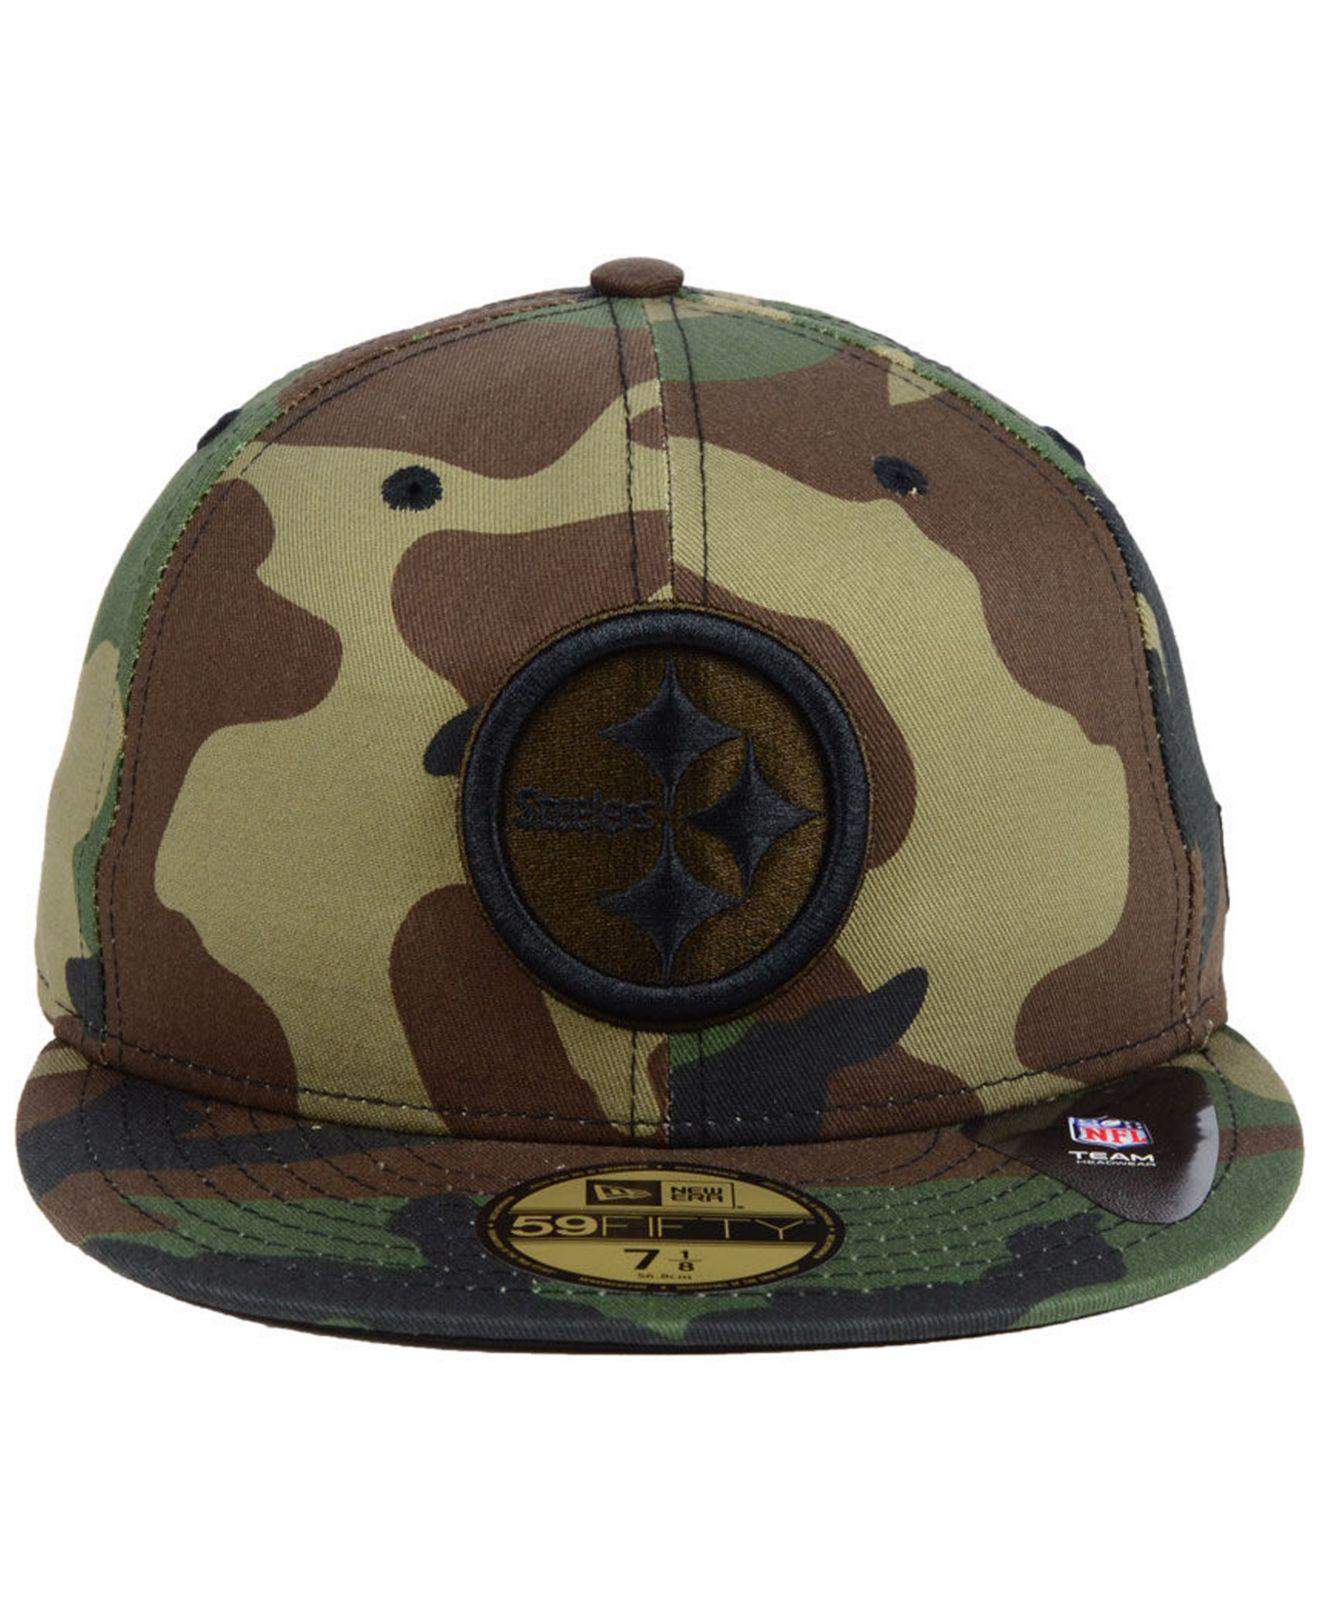 ... store lyst ktz pittsburgh steelers woodland prism pack 59fifty fitted  cap in green for men 5edb4 553041818